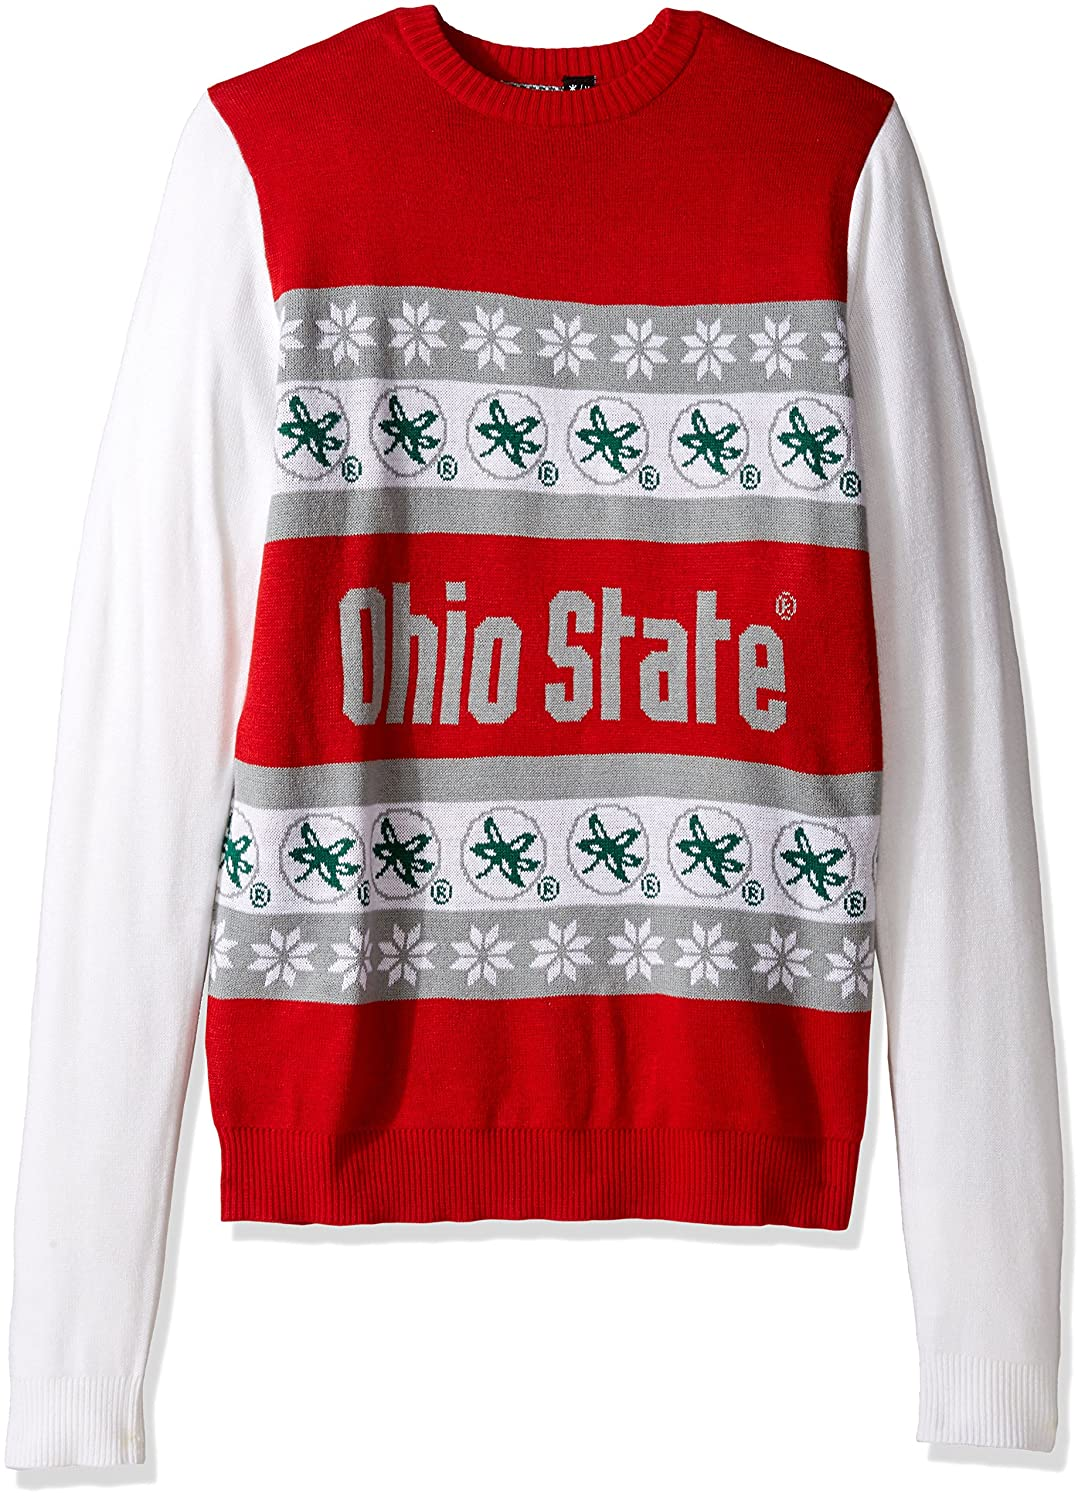 Amazon.com: NCAA One Too Many Ugly Sweater: Sports & Outdoors